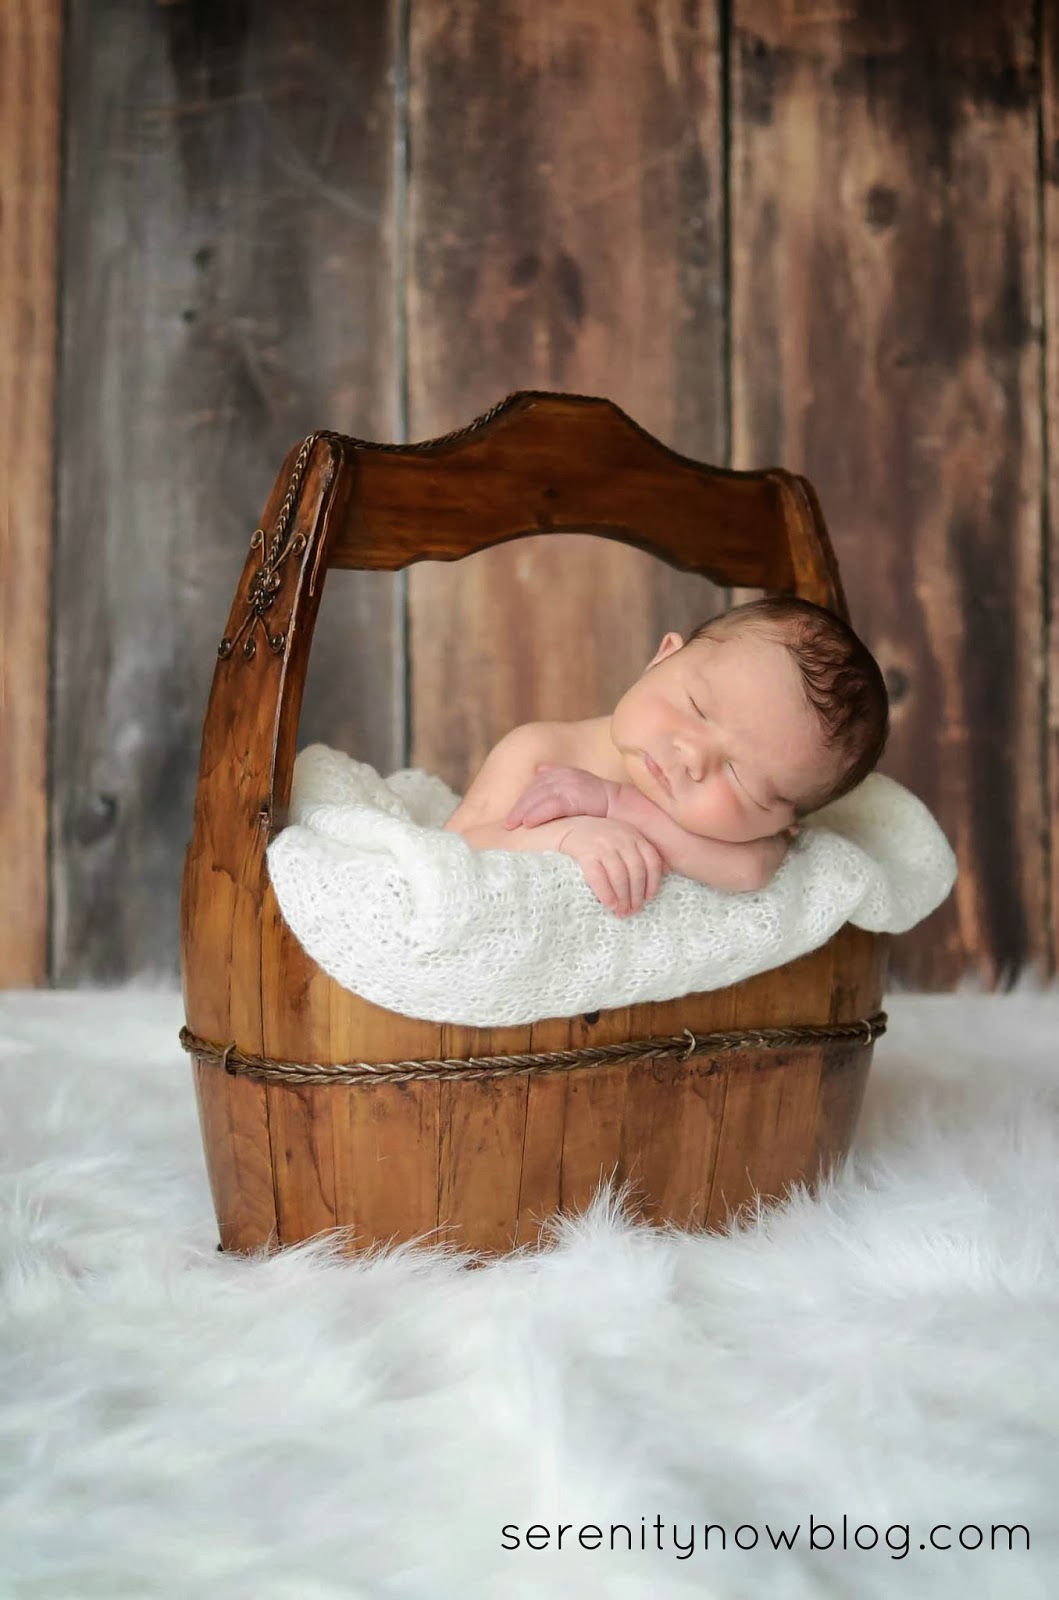 How to Plan for Your Newborn or Family Photo Session, from Serenity Now